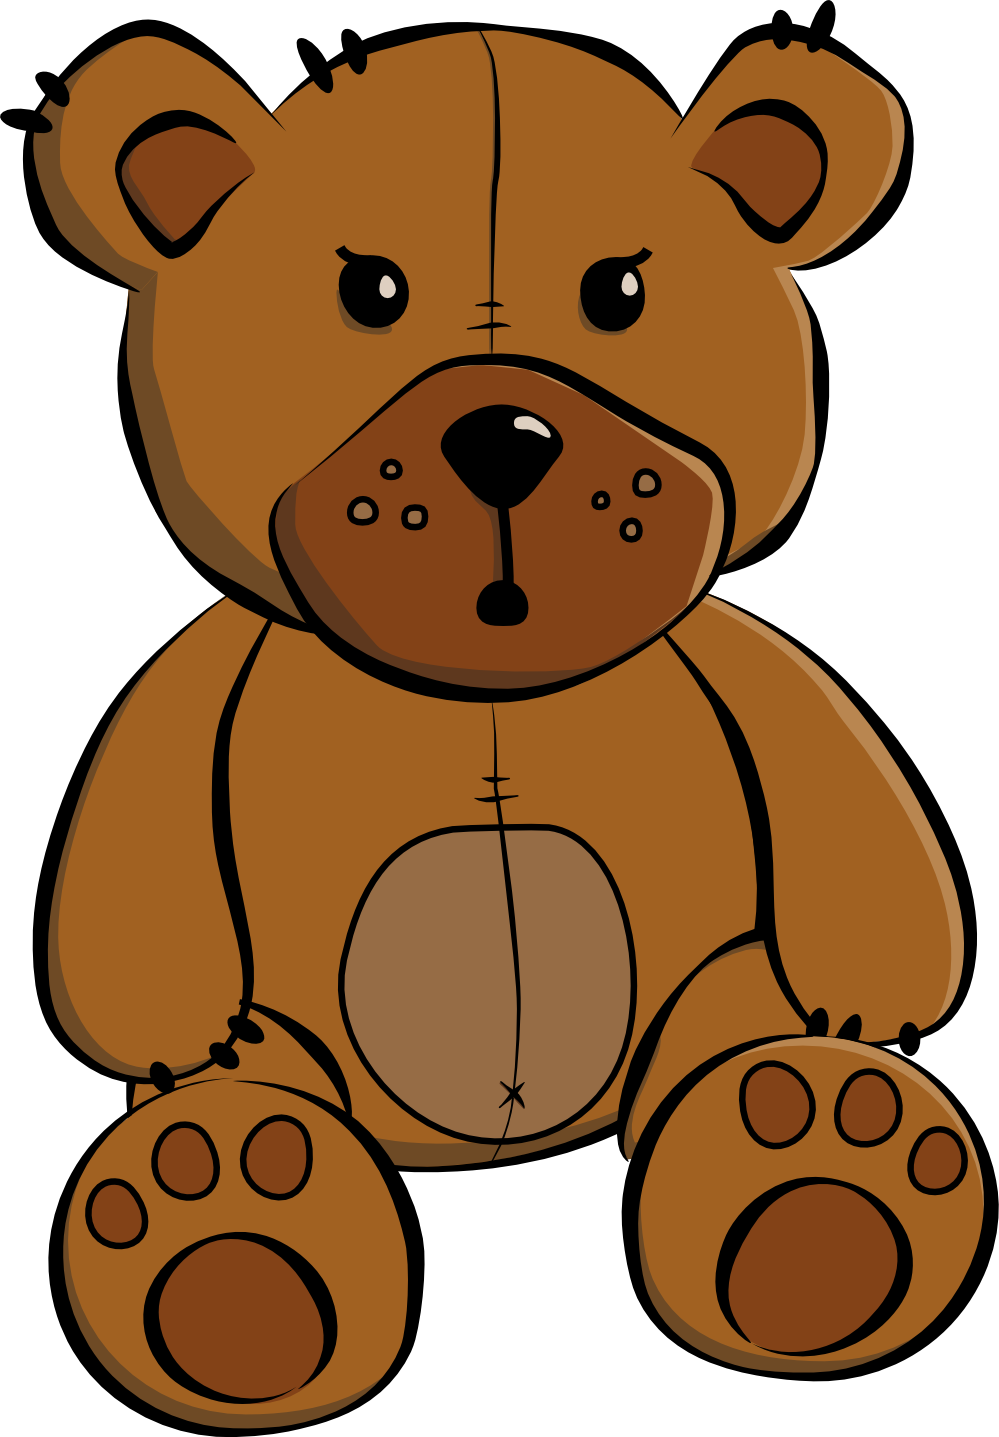 Stuffed Animal clipart #14, Download drawings